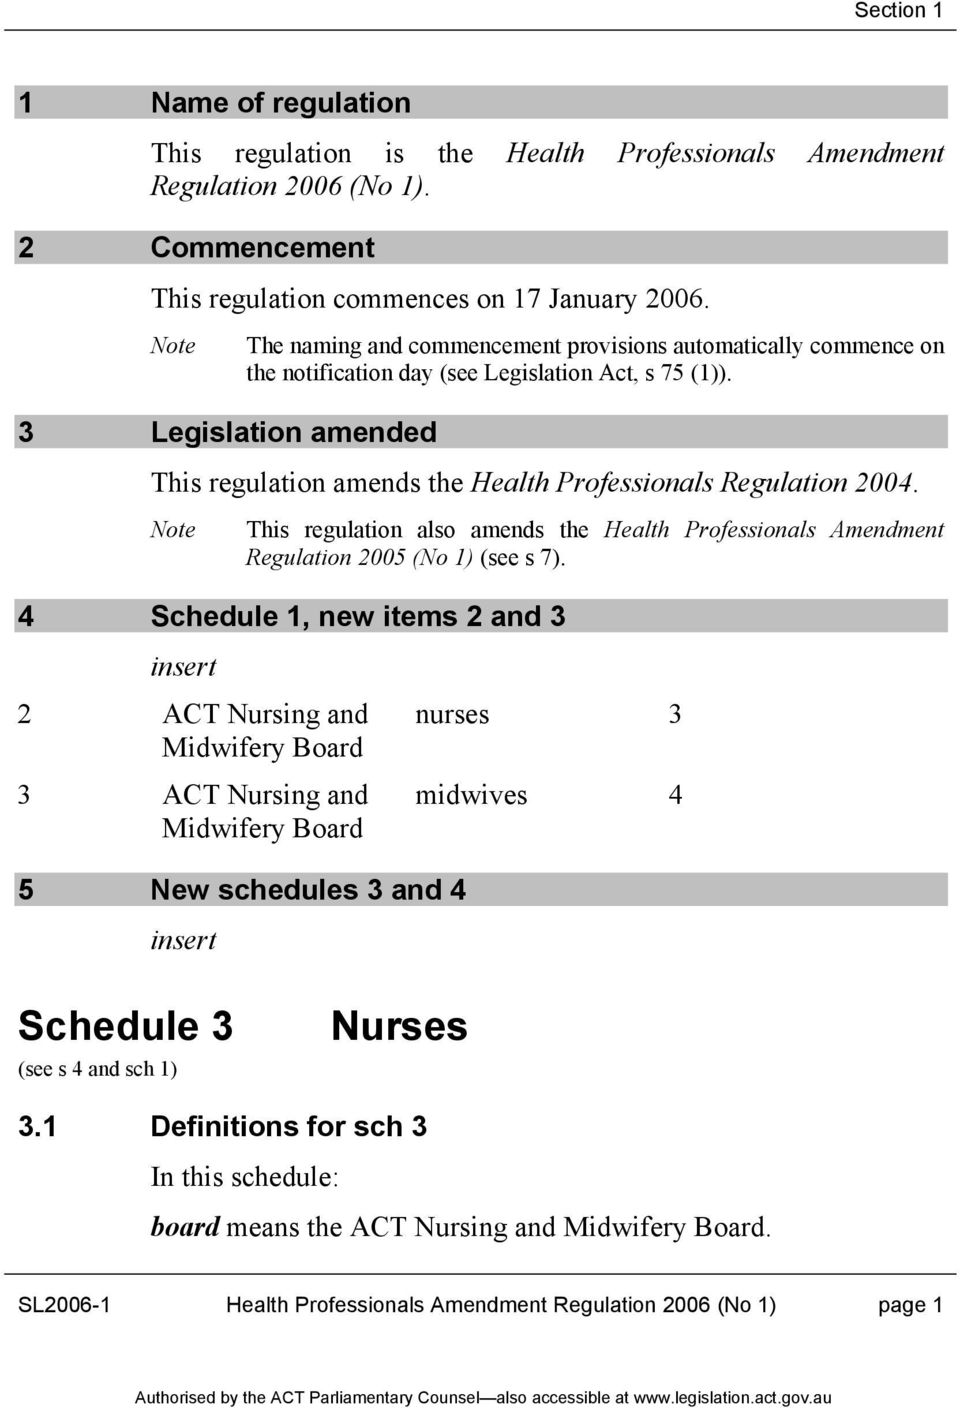 3 Legislation amended This regulation amends the Health Professionals Regulation 2004. This regulation also amends the Health Professionals Amendment Regulation 2005 (No 1) (see s 7).